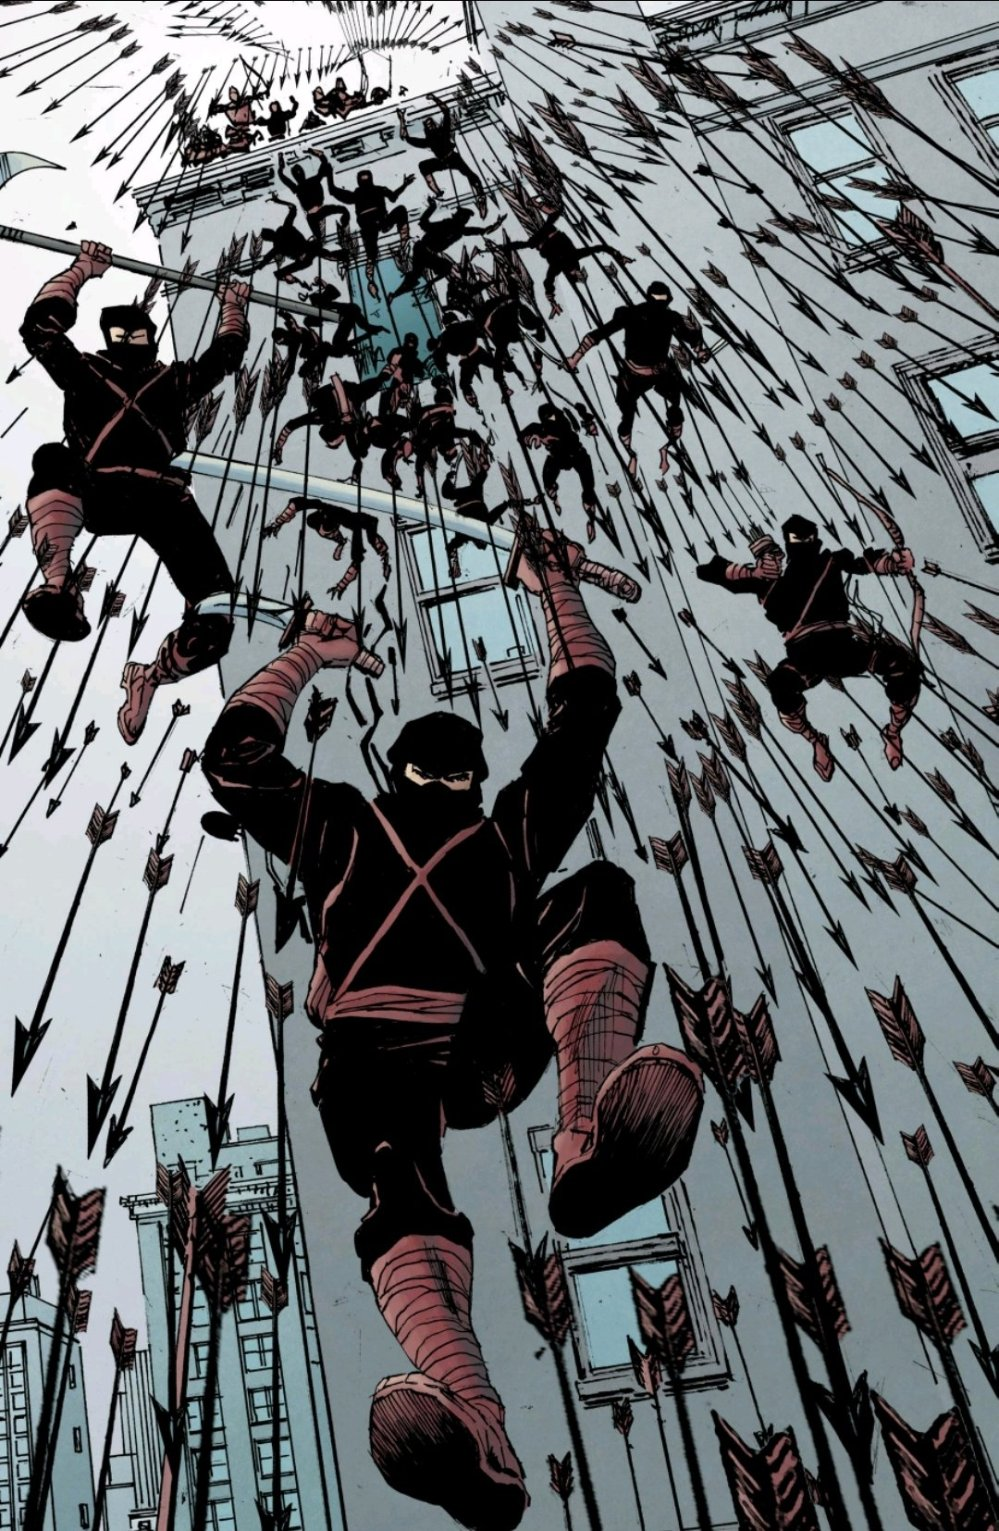 Just all of the ninjas.